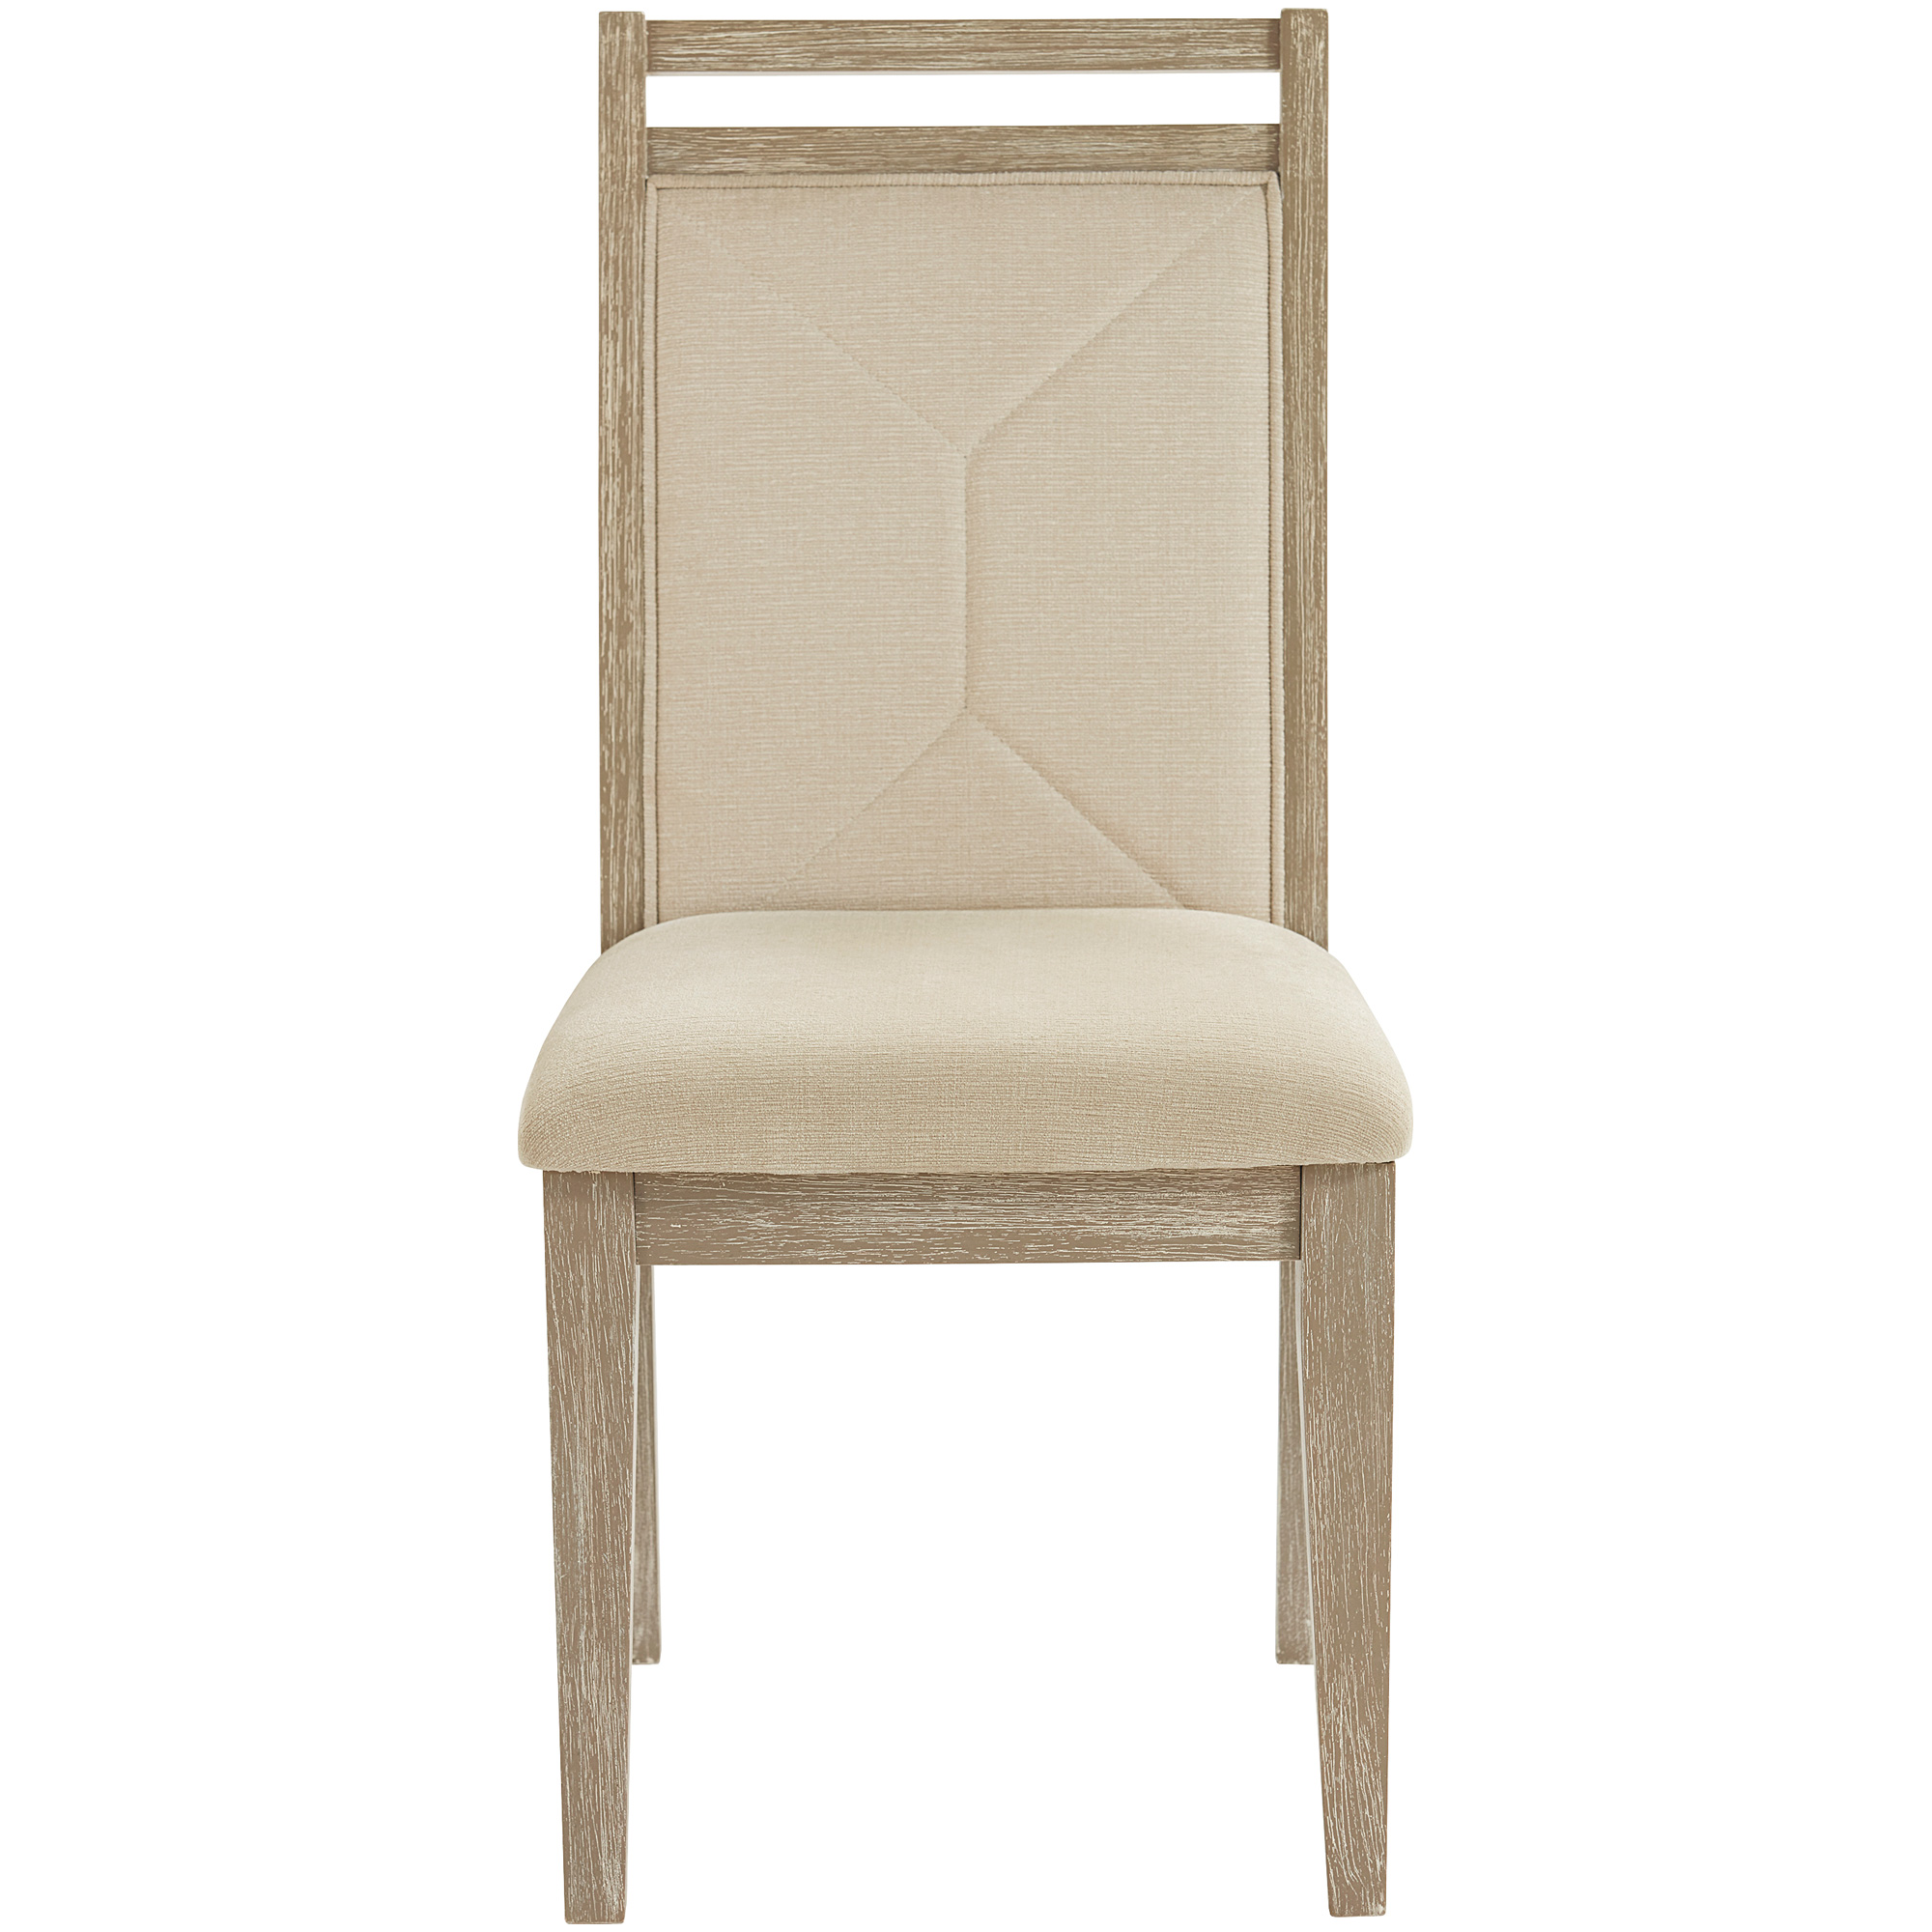 Progressive | Beck Weathered Taupe Upholstered Side Chair